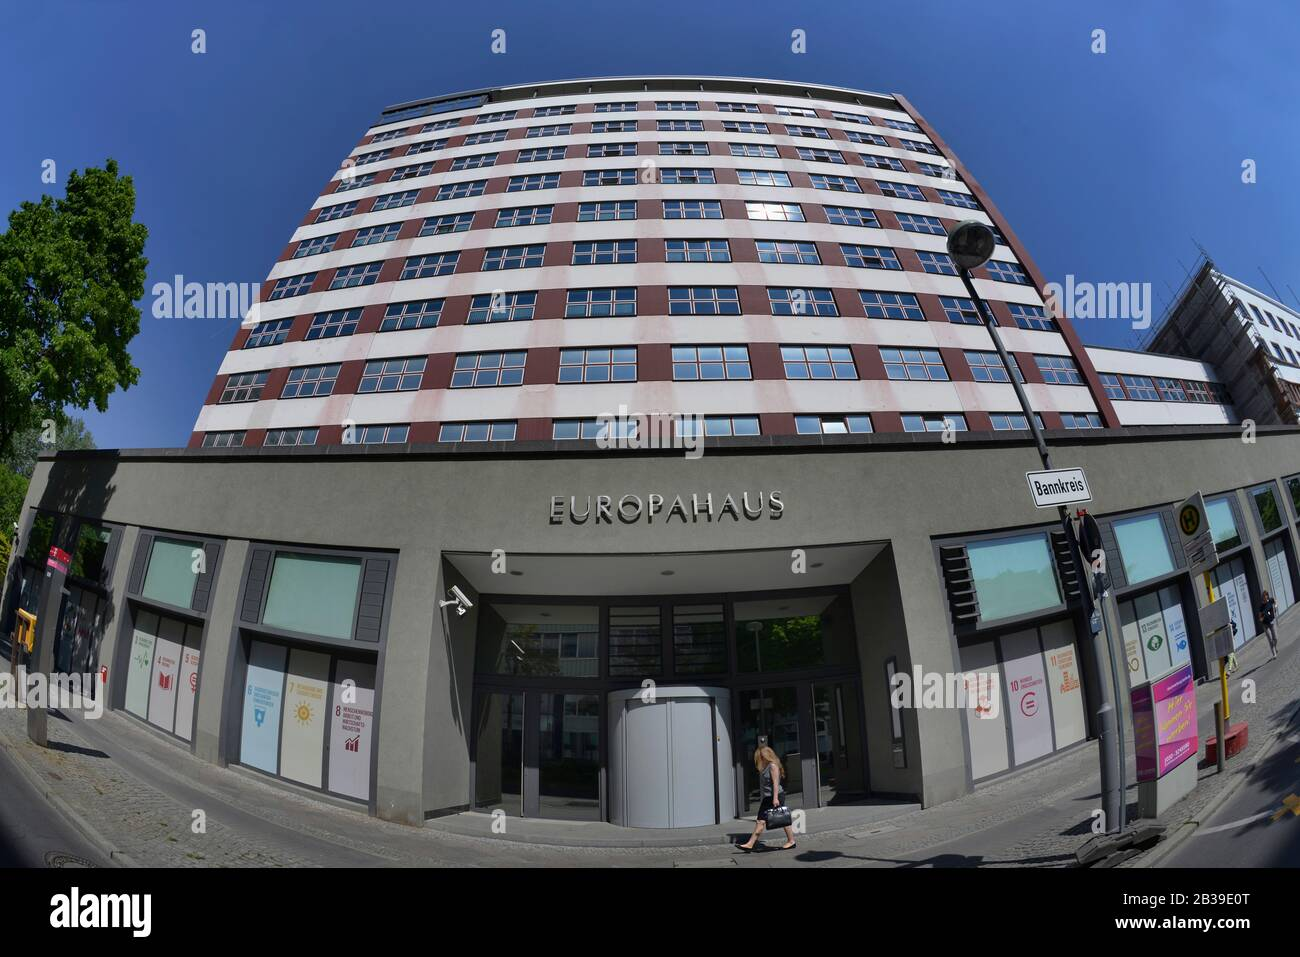 Europahaus, Stresemannstrasse, Kreuzberg, Berlin, Deutschland Stock Photo